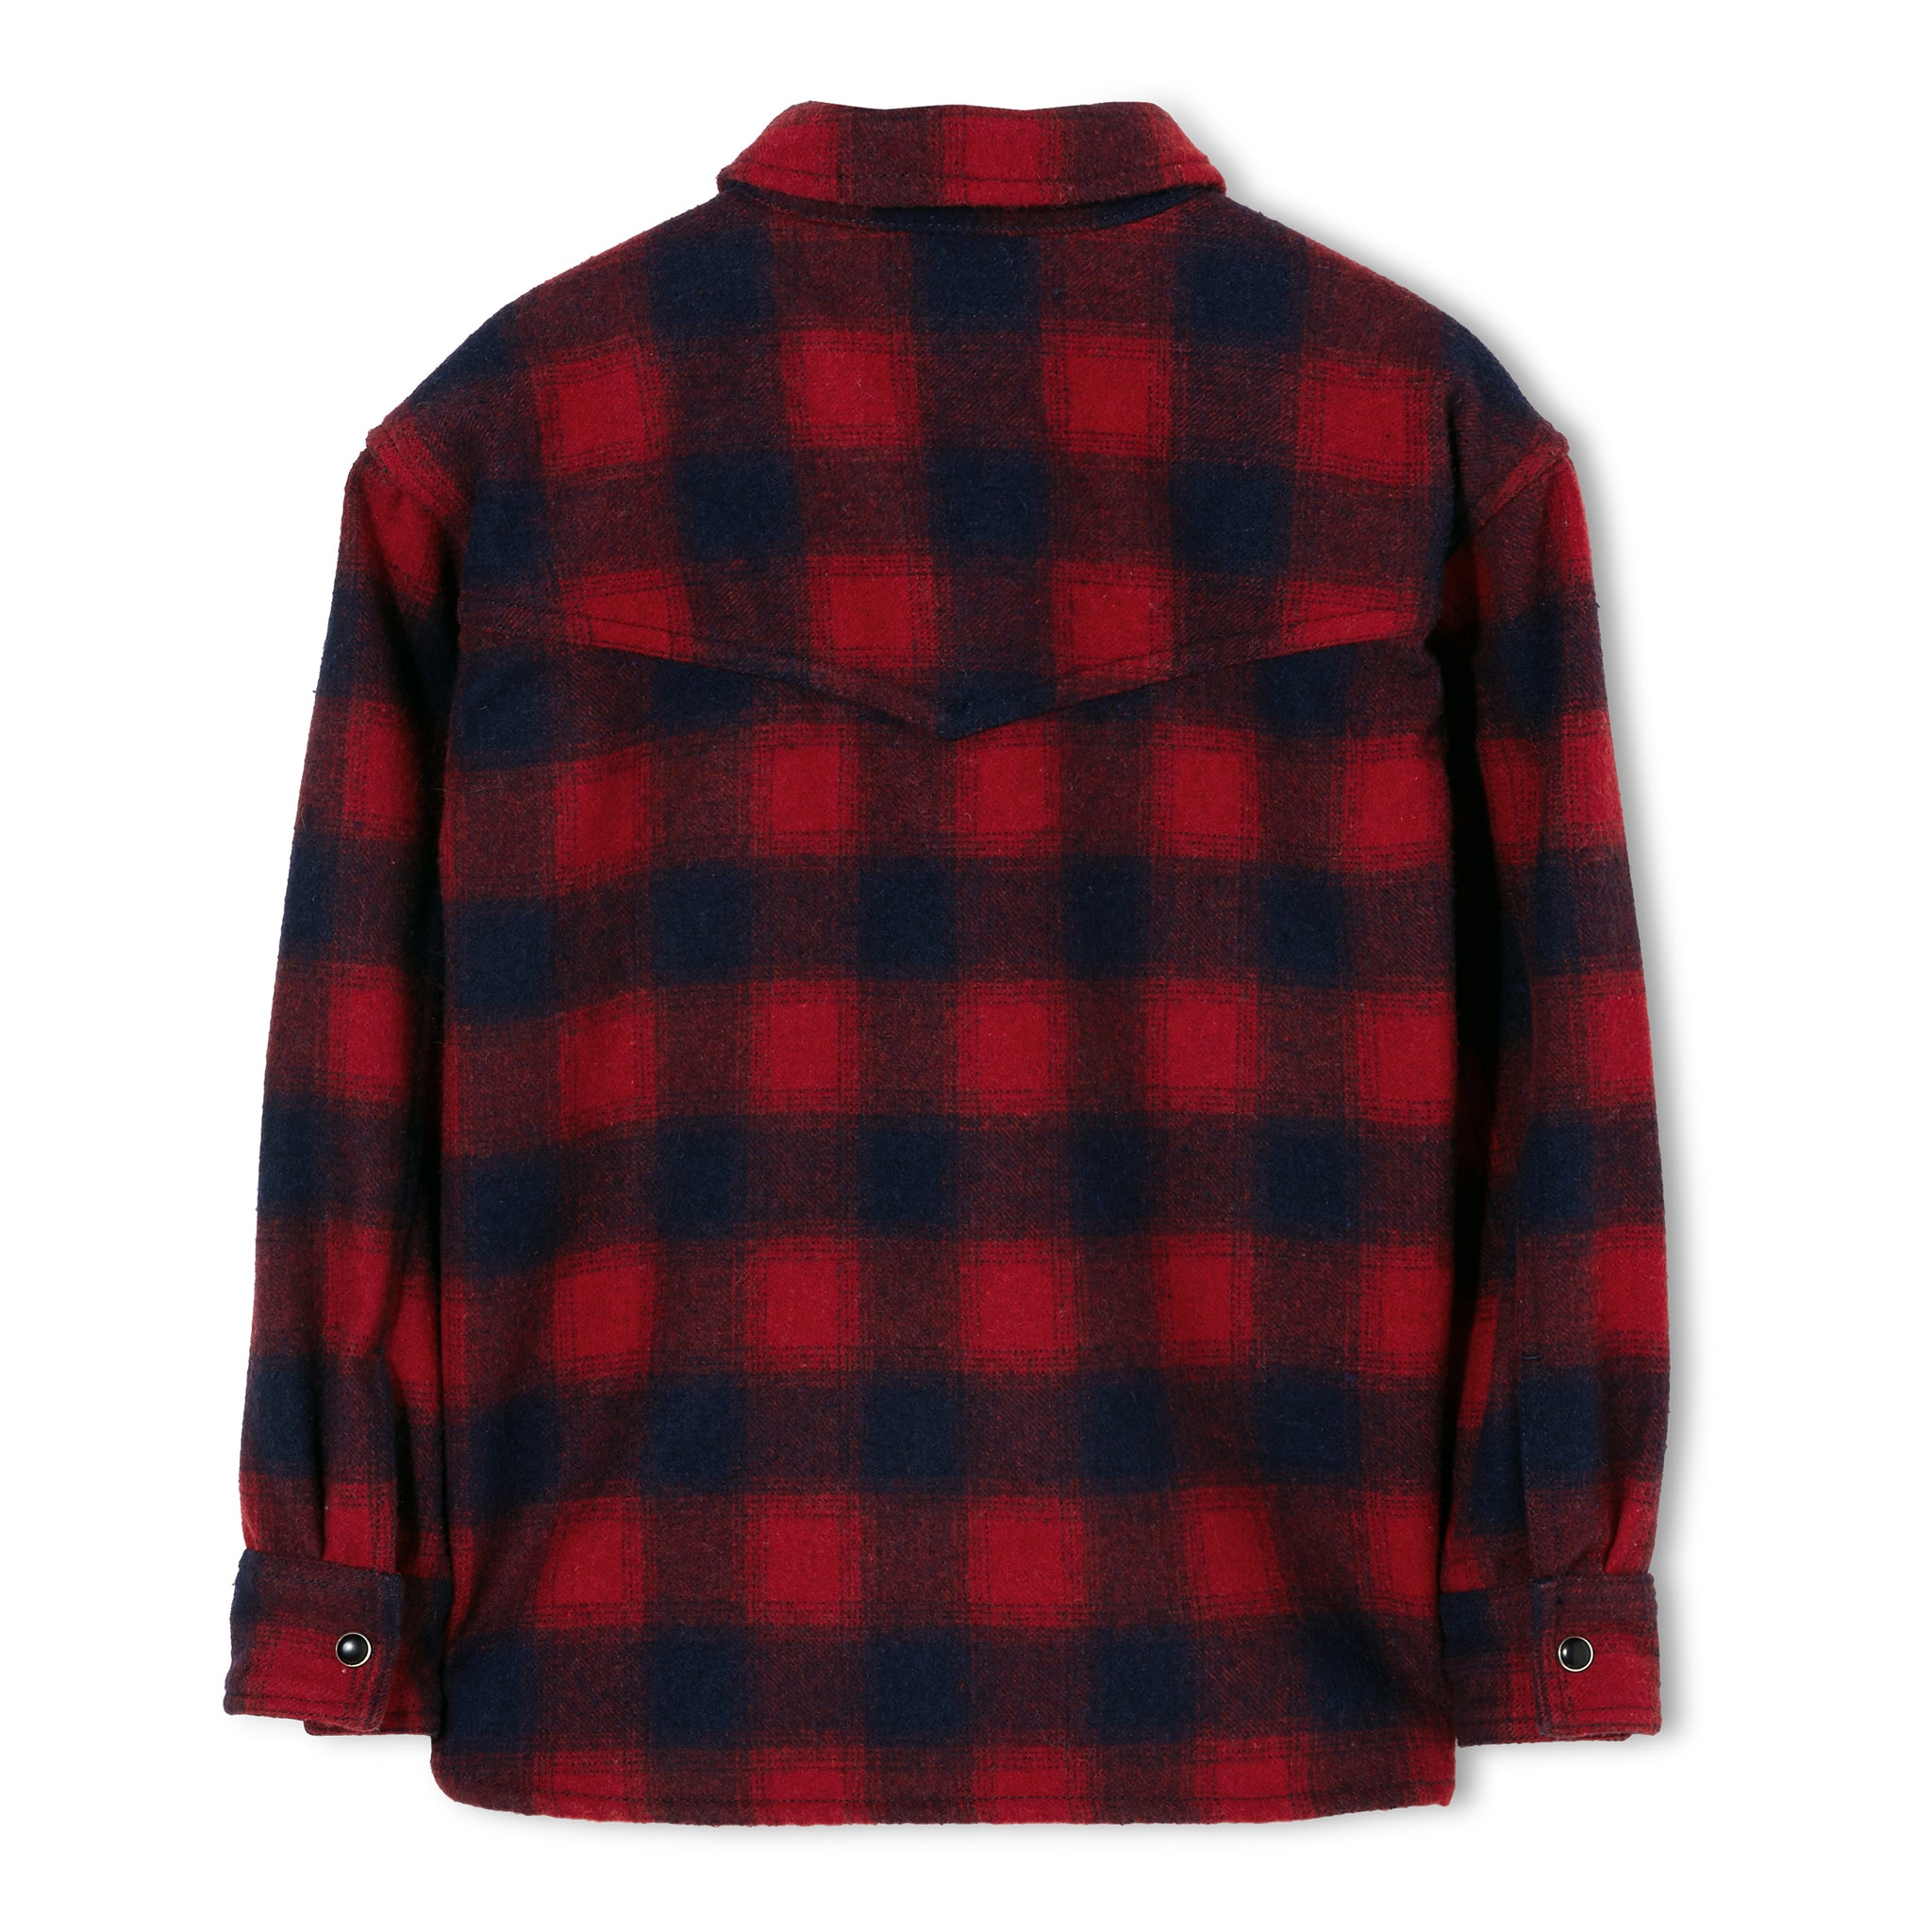 NEW DUSK Red Checks - Long Sleeve Shirt 2